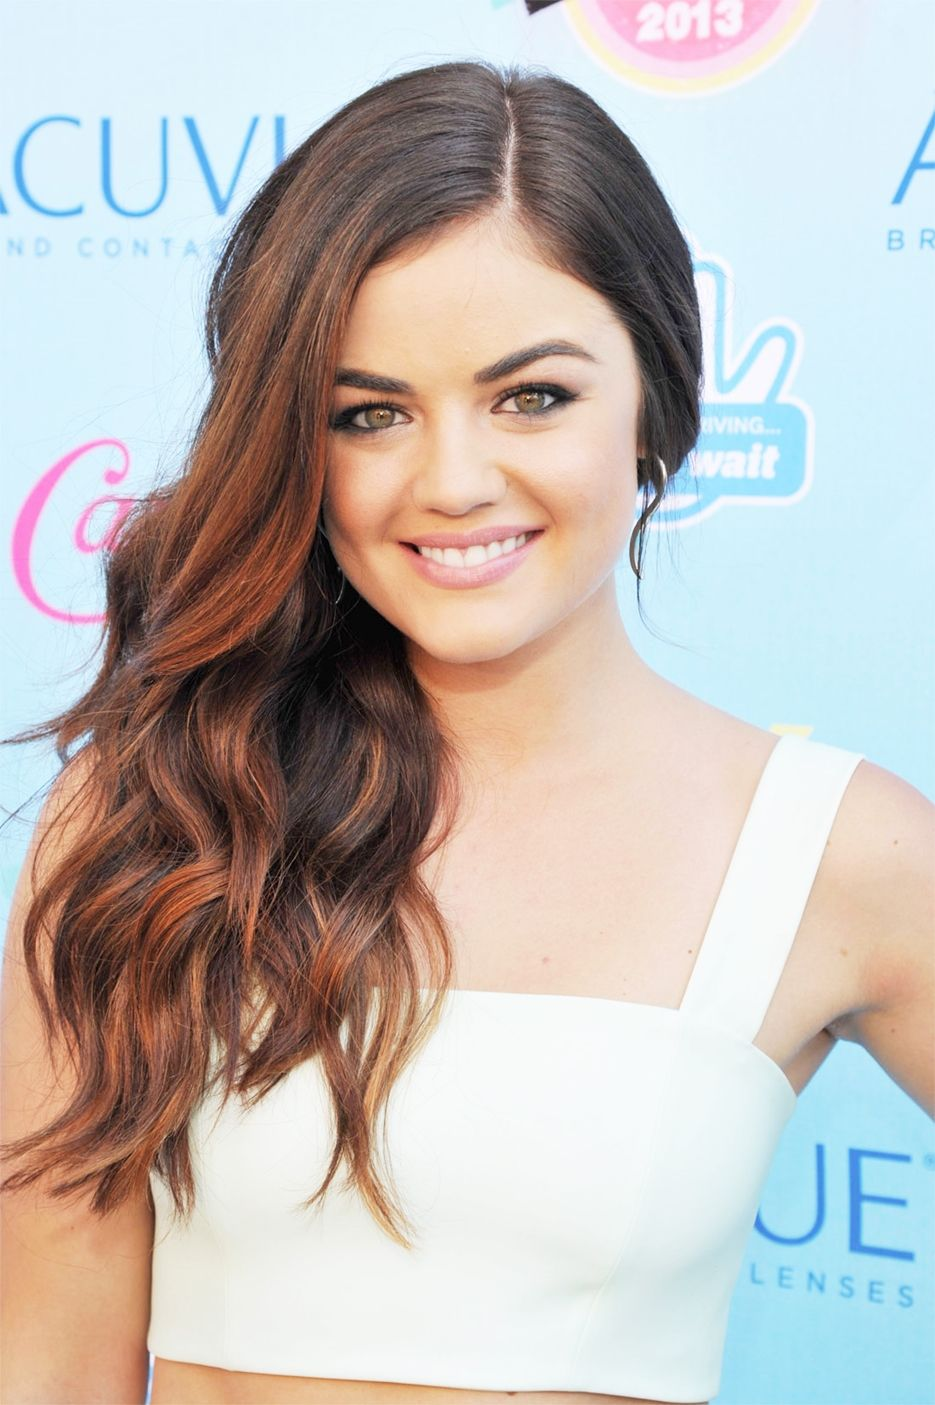 Lucy Hale Teen Choice 2013 Hair Color Ideas Pinterest Hair